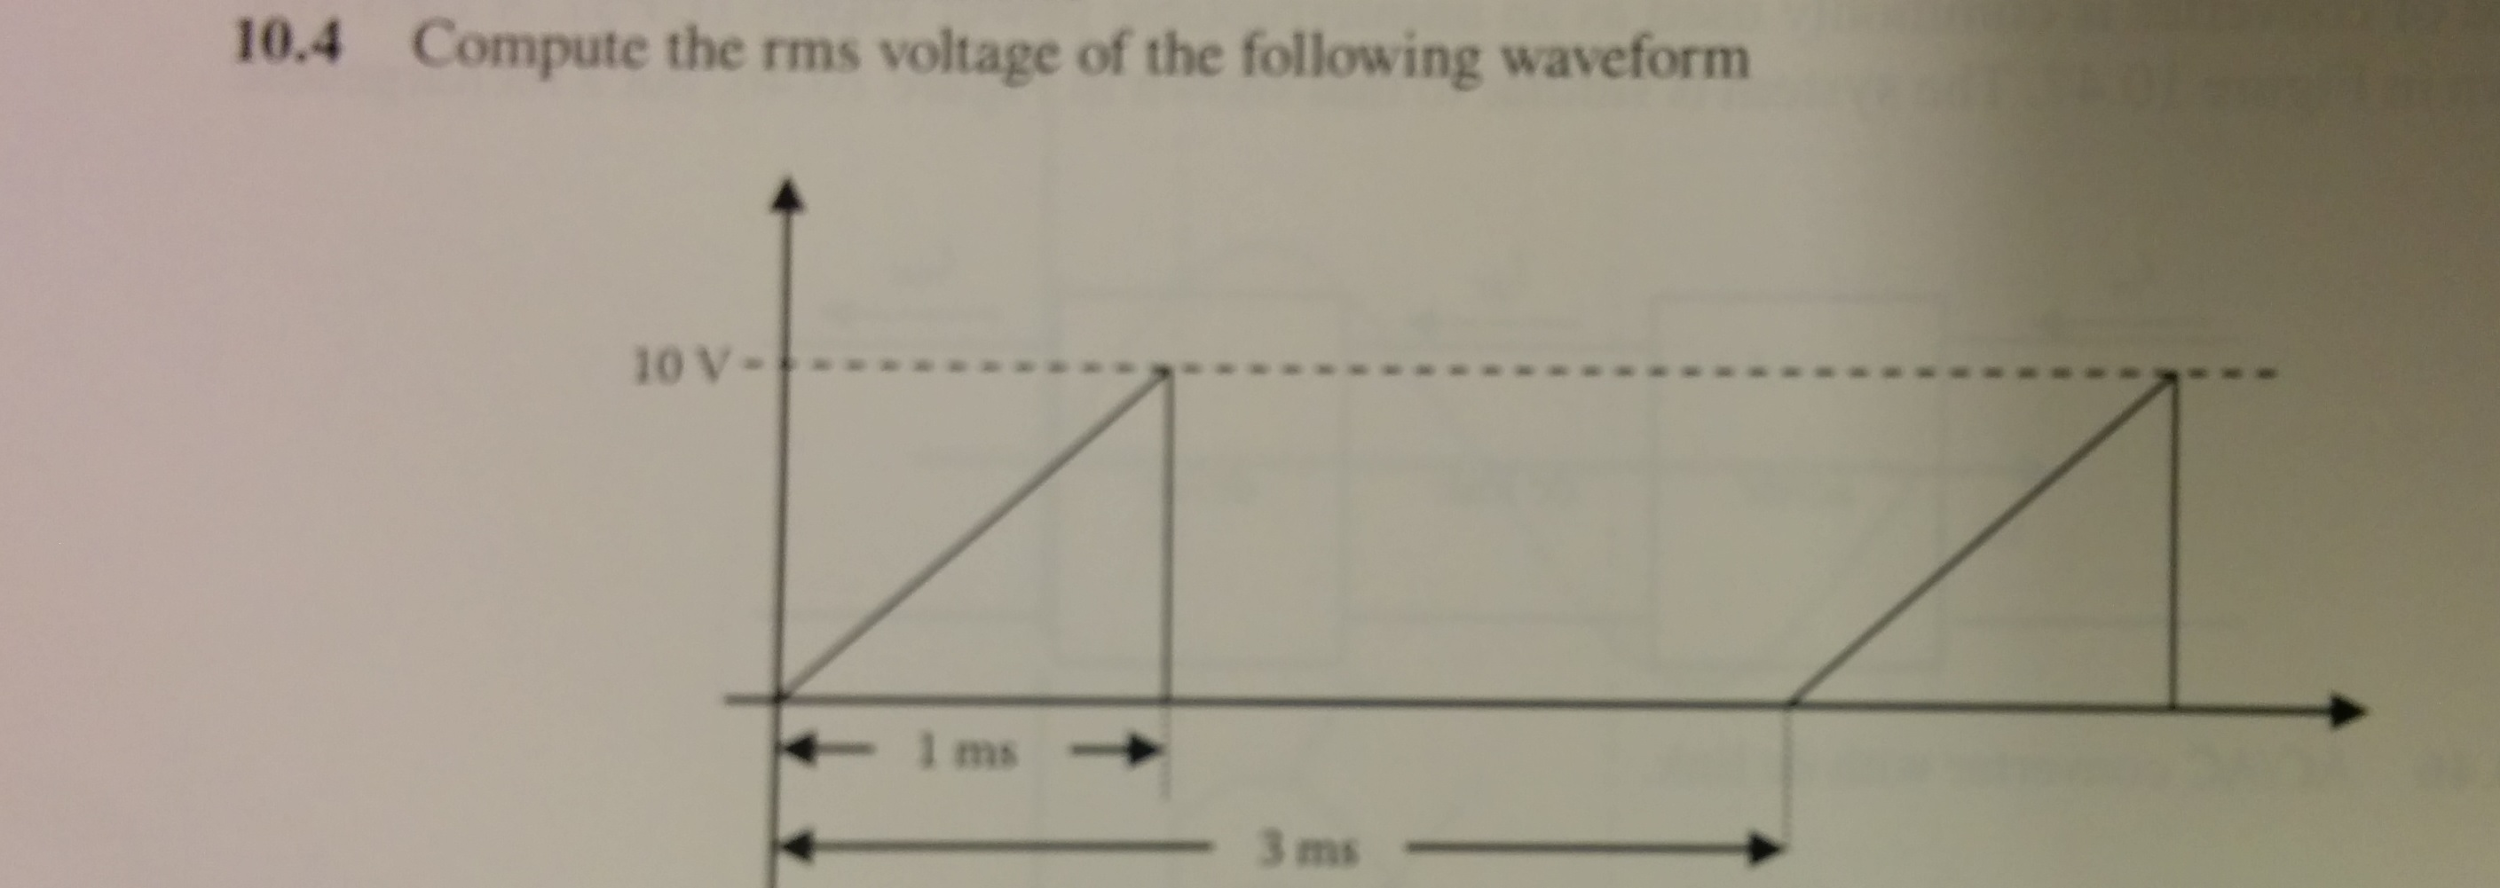 Compute the rms voltage of the following waveform